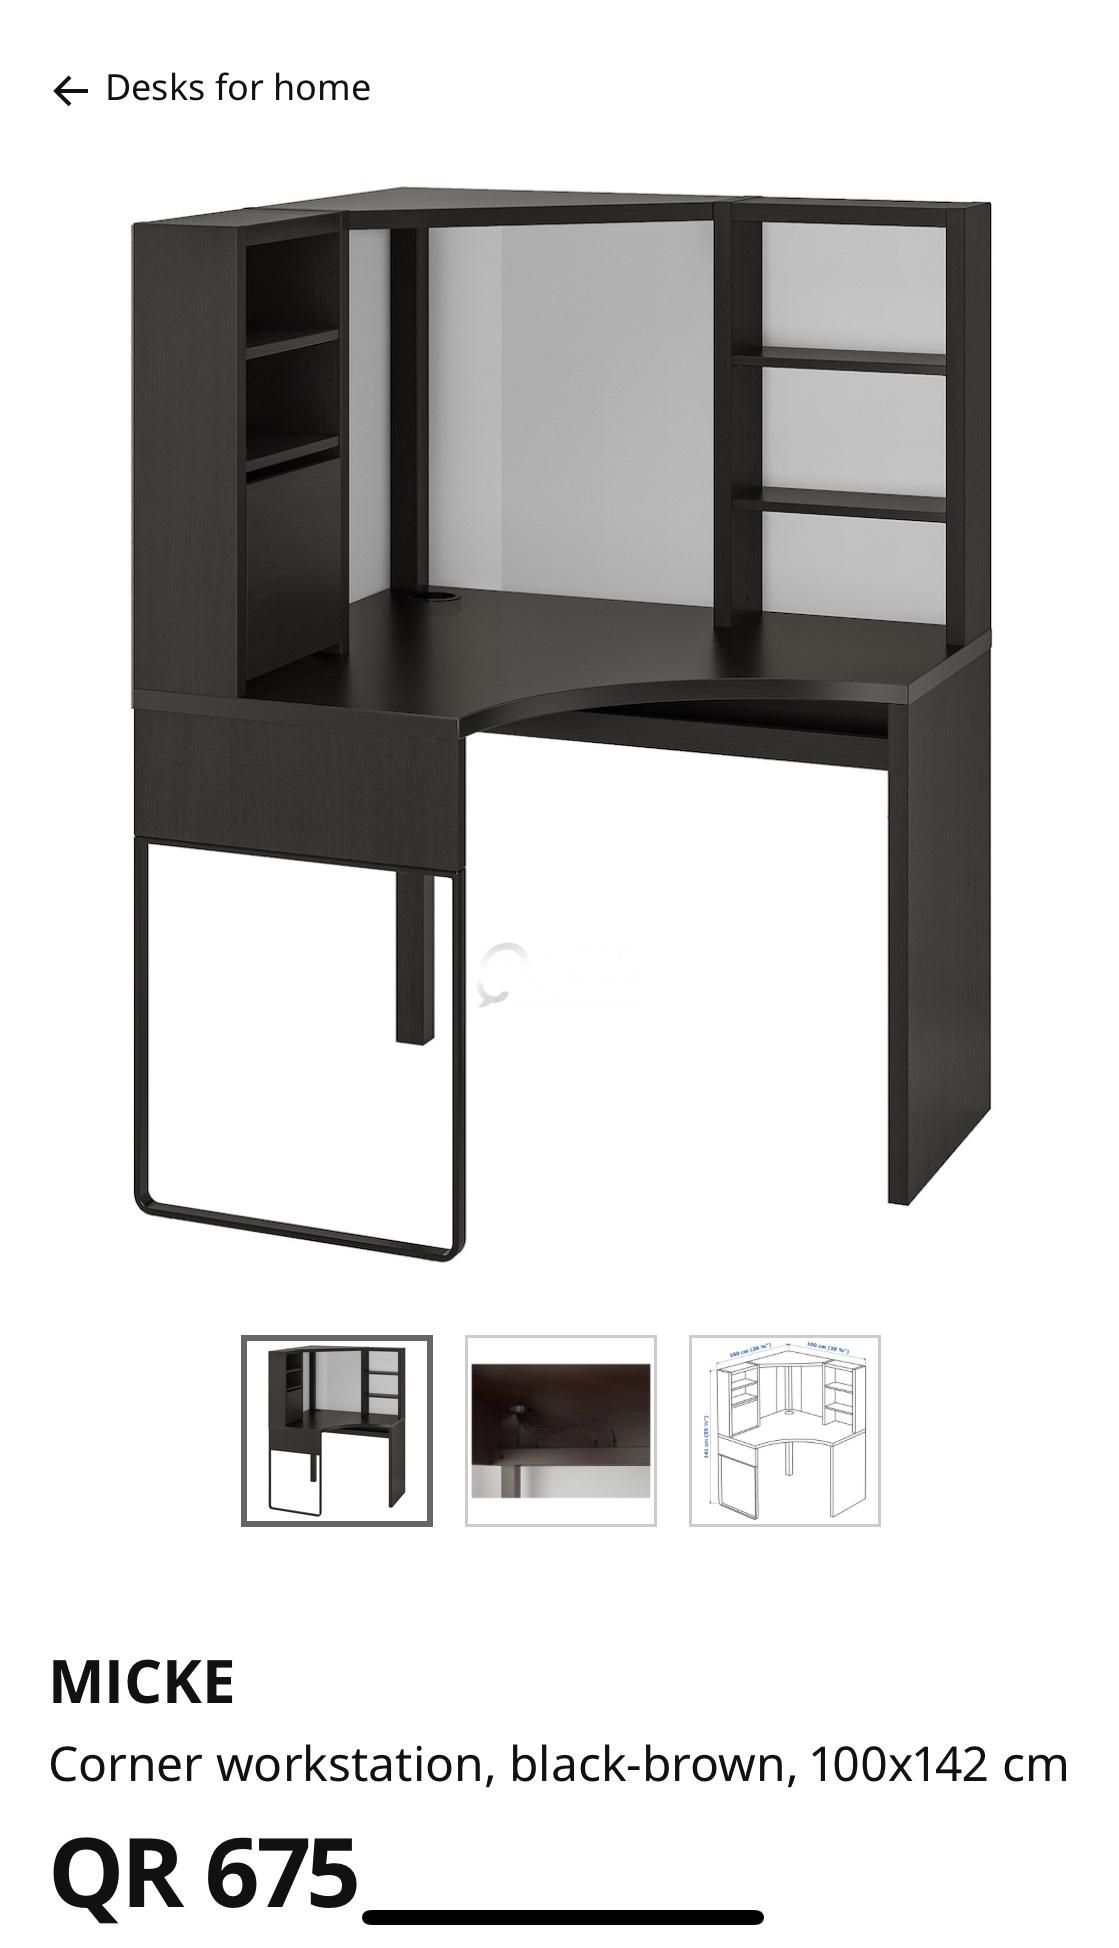 Ikea Corner Desk Working Station Qatar Living